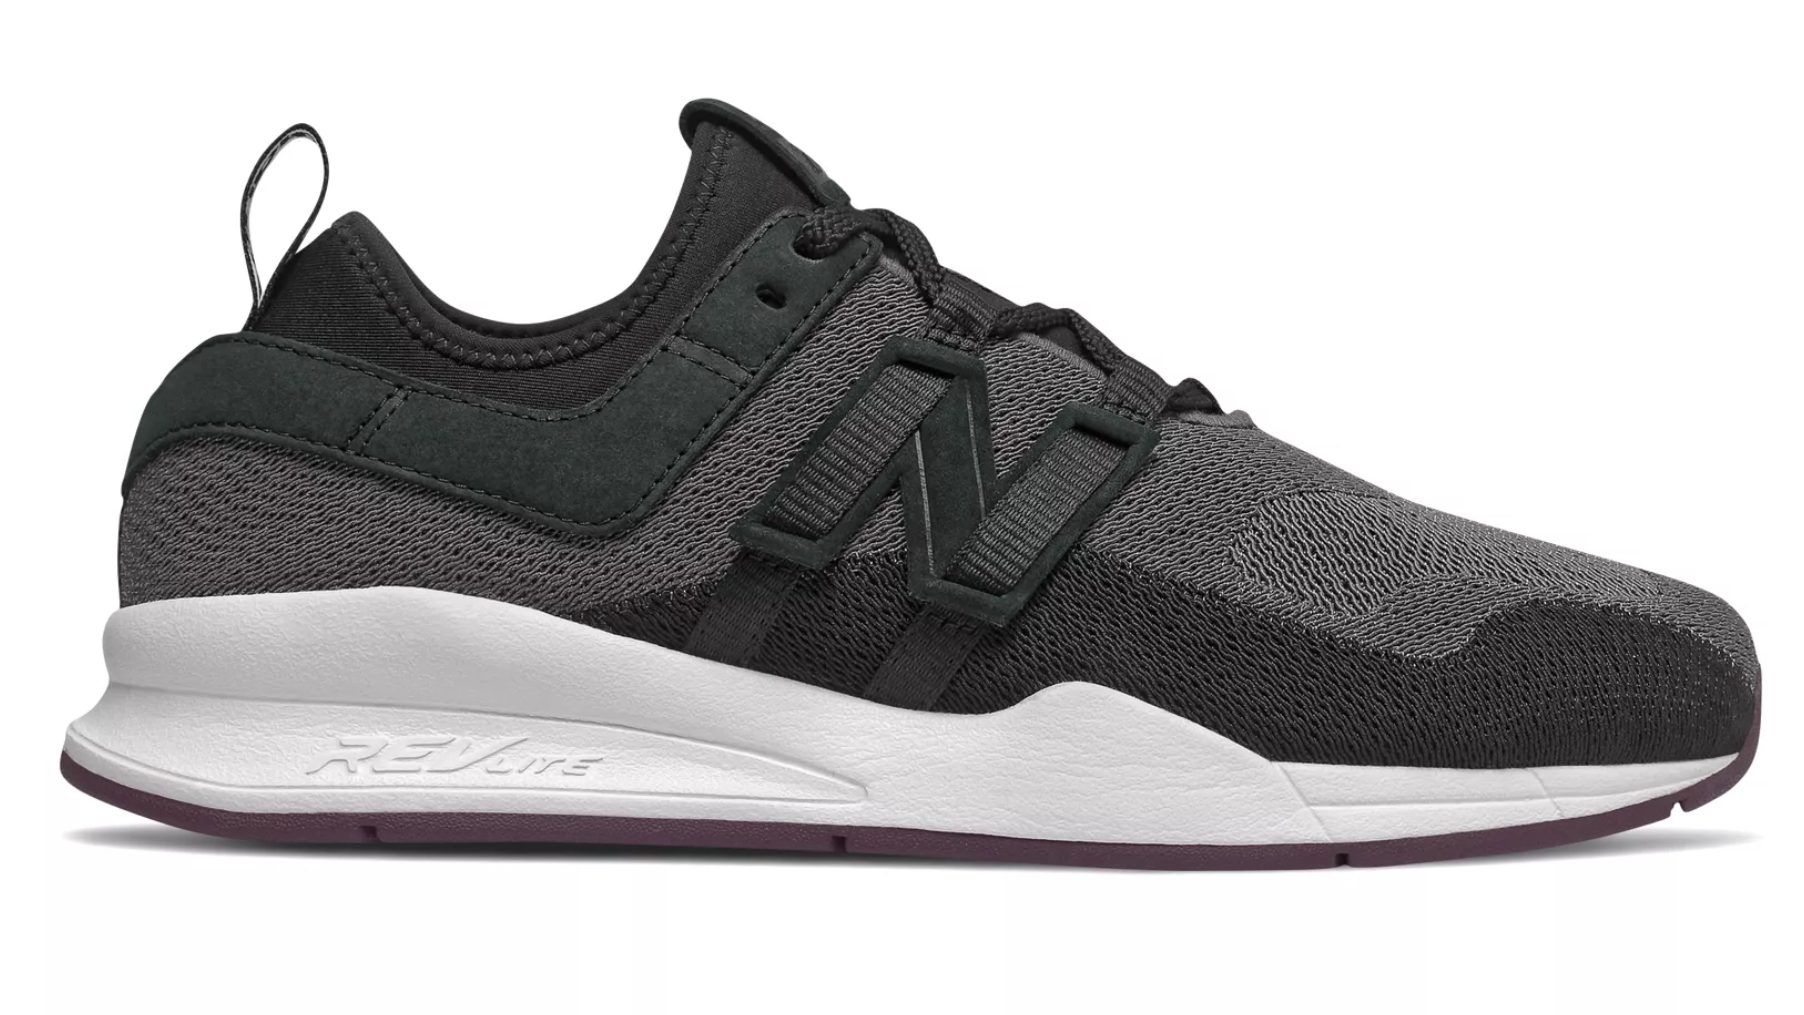 promo code d9c9b e38a5 10 Best New Balance 247s   New Balance Sneakers 2019